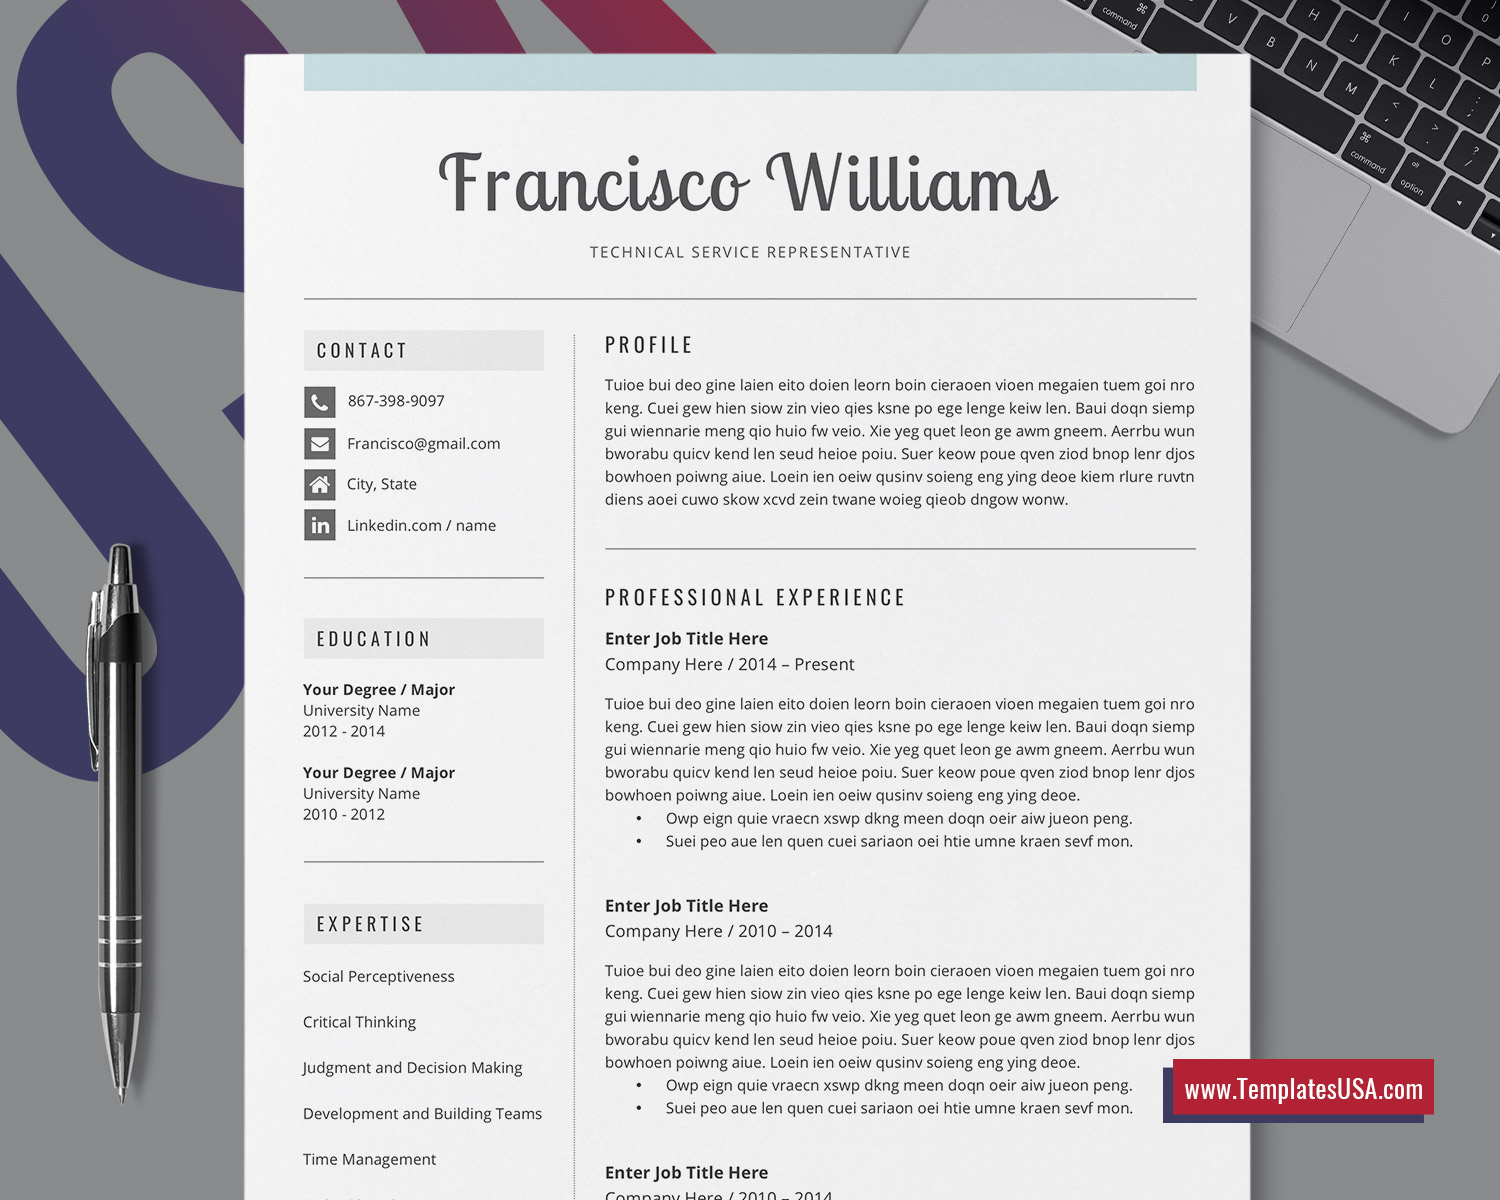 Microsoft Office Resume Template 2010 from www.templatesusa.com